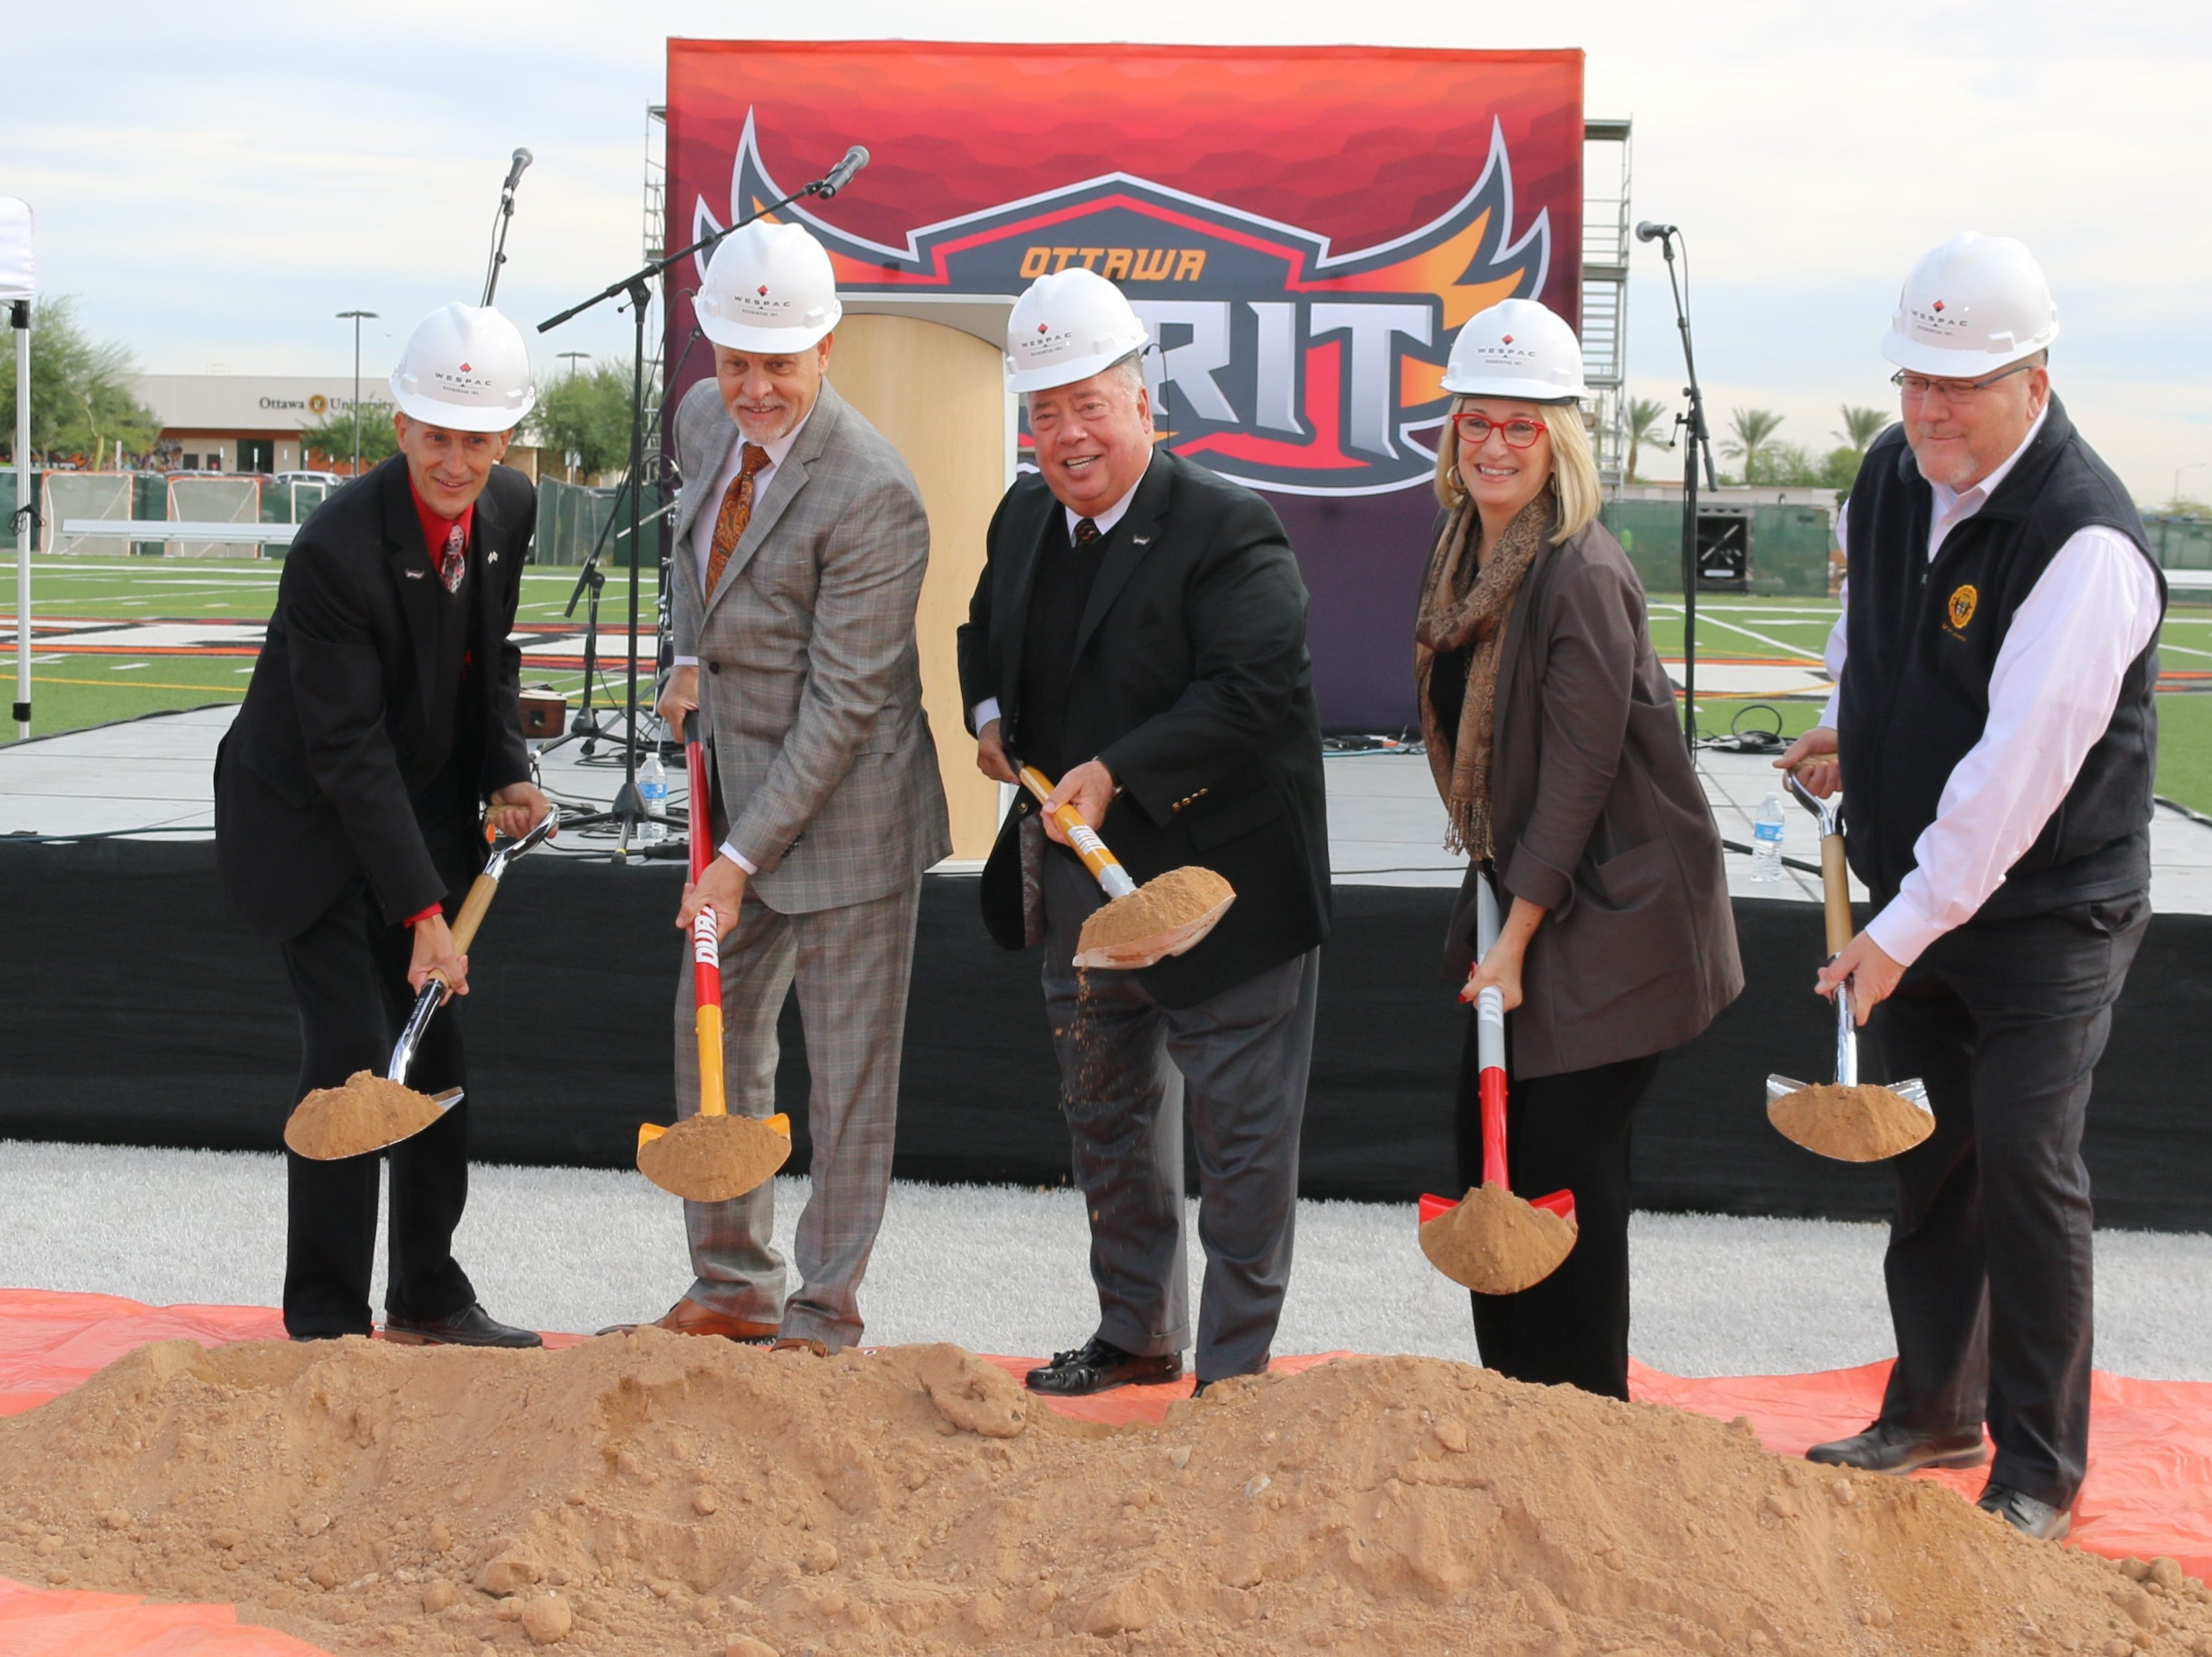 Officials toss dirt at the groundbreaking for Ottawa University's residence hall in Surprise.